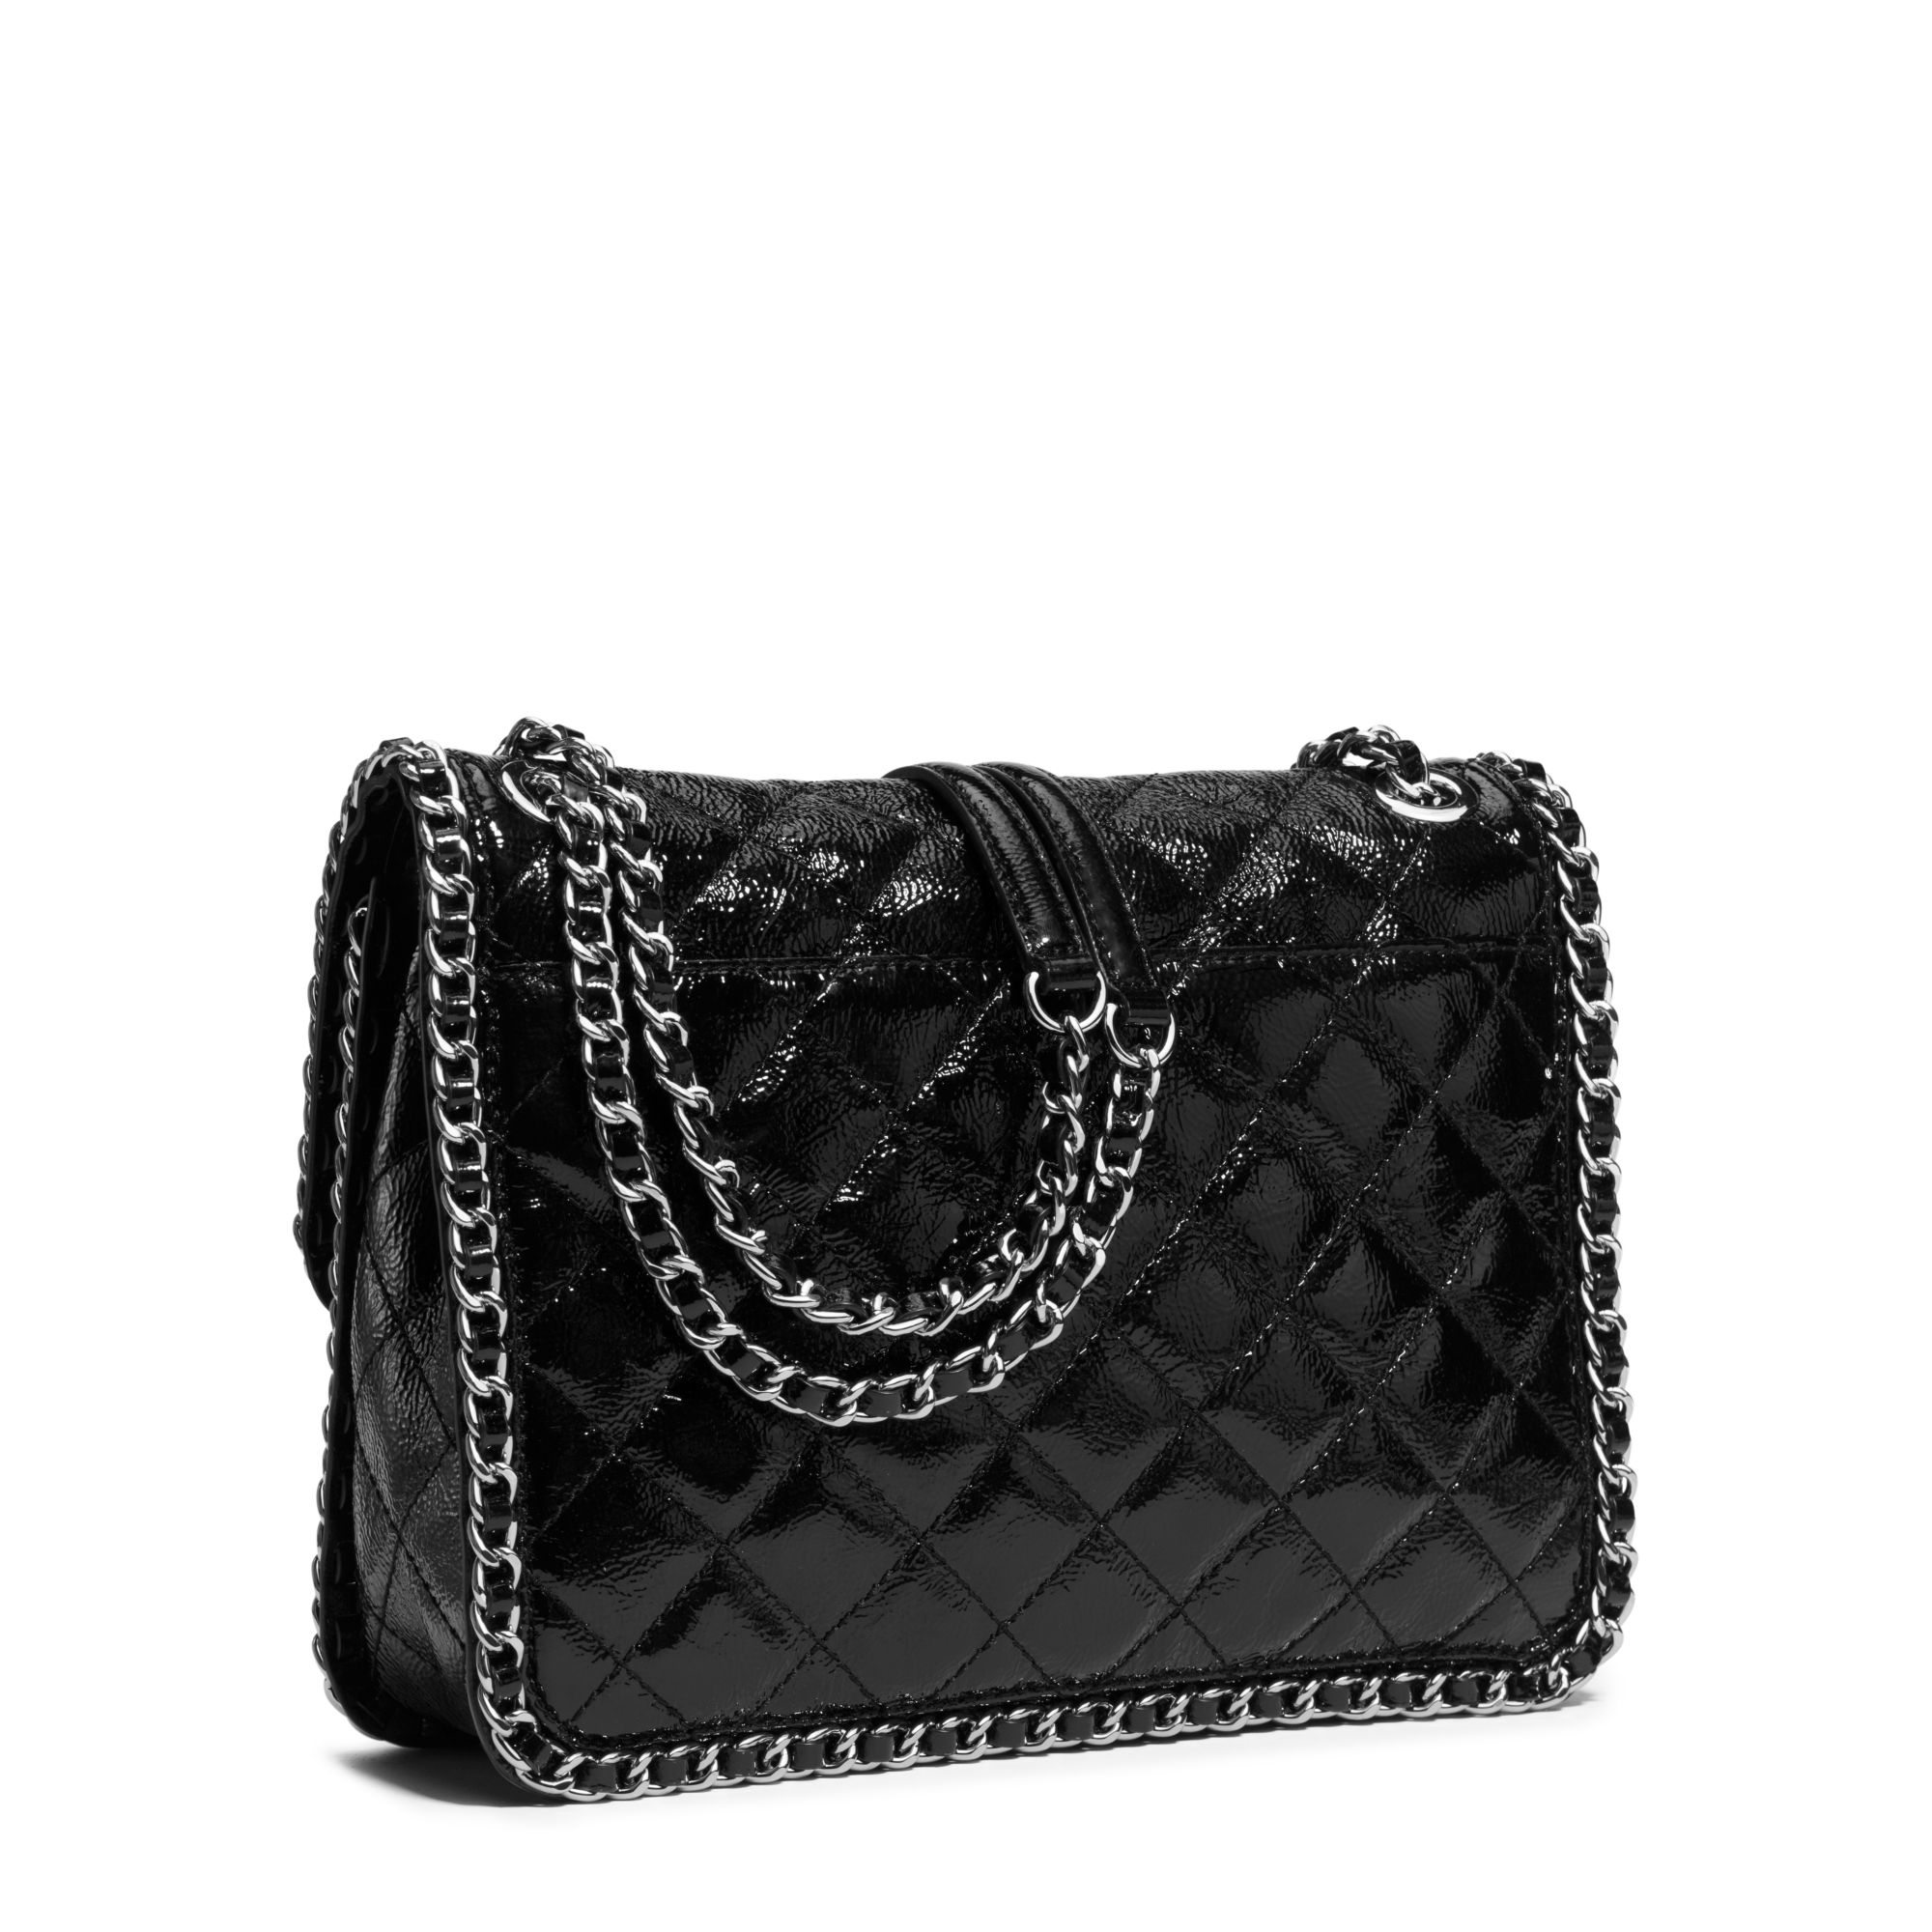 Michael Kors Carine Large Quilted Patent Leather Shoulder